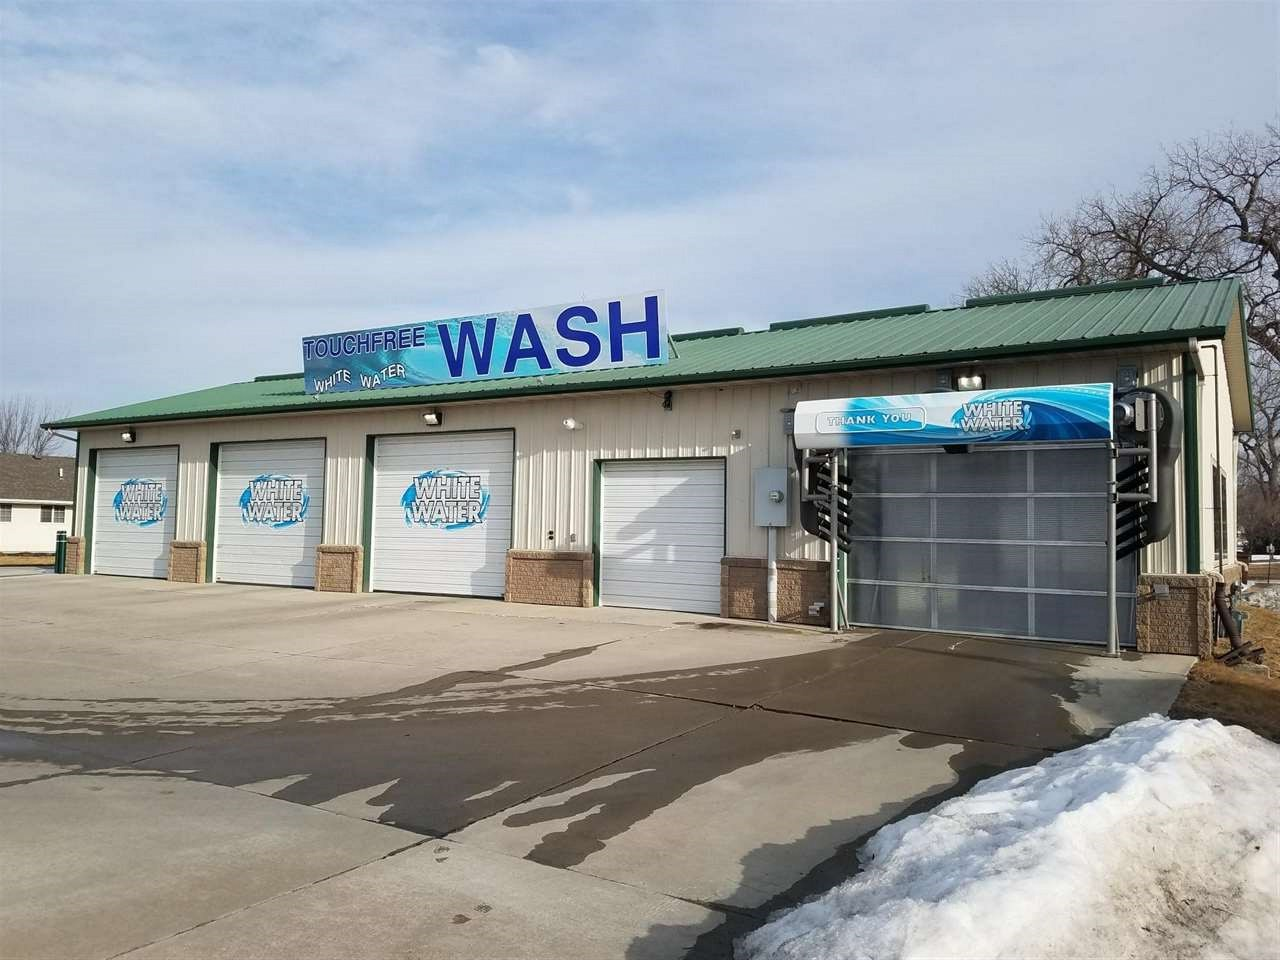 Additional Parcel Number: 5604318.00  Seller has put over $450,000 in repairs and new equipment into the car wash in the last 12 months.  The entire operating system is new and fully automated.  The car wash can be operated and monitored remotely by PC or cell phone using the onsite security system.  Now is the time to get this virtually brand new car wash.  Financials available upon request.